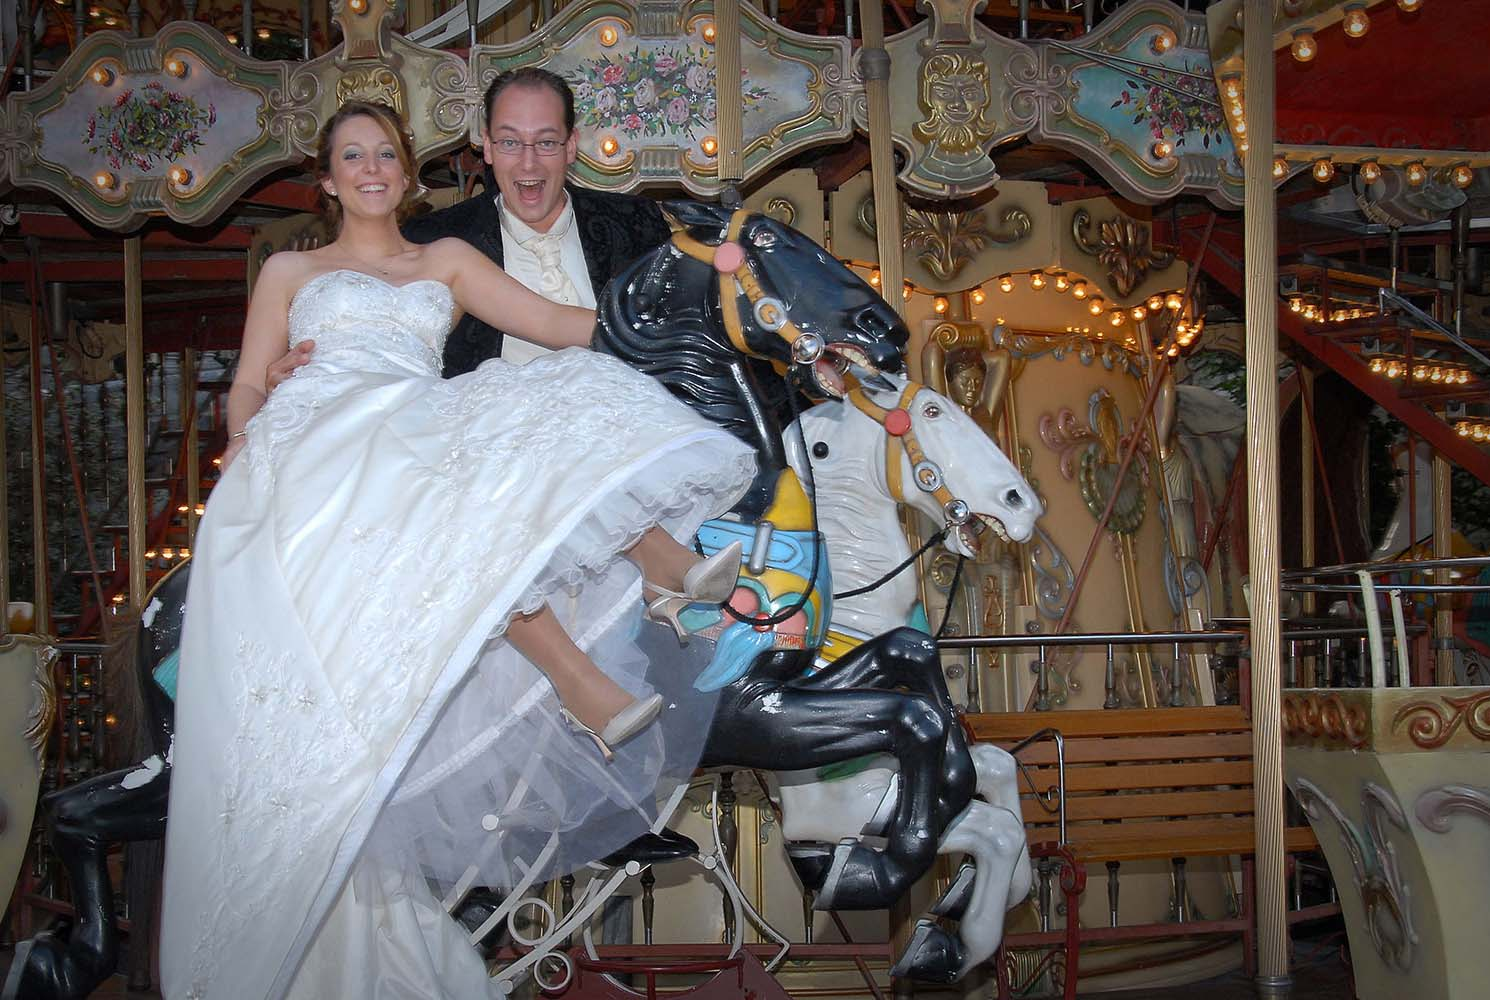 Groom and bride in wedding dress on merry go round, Paris, France